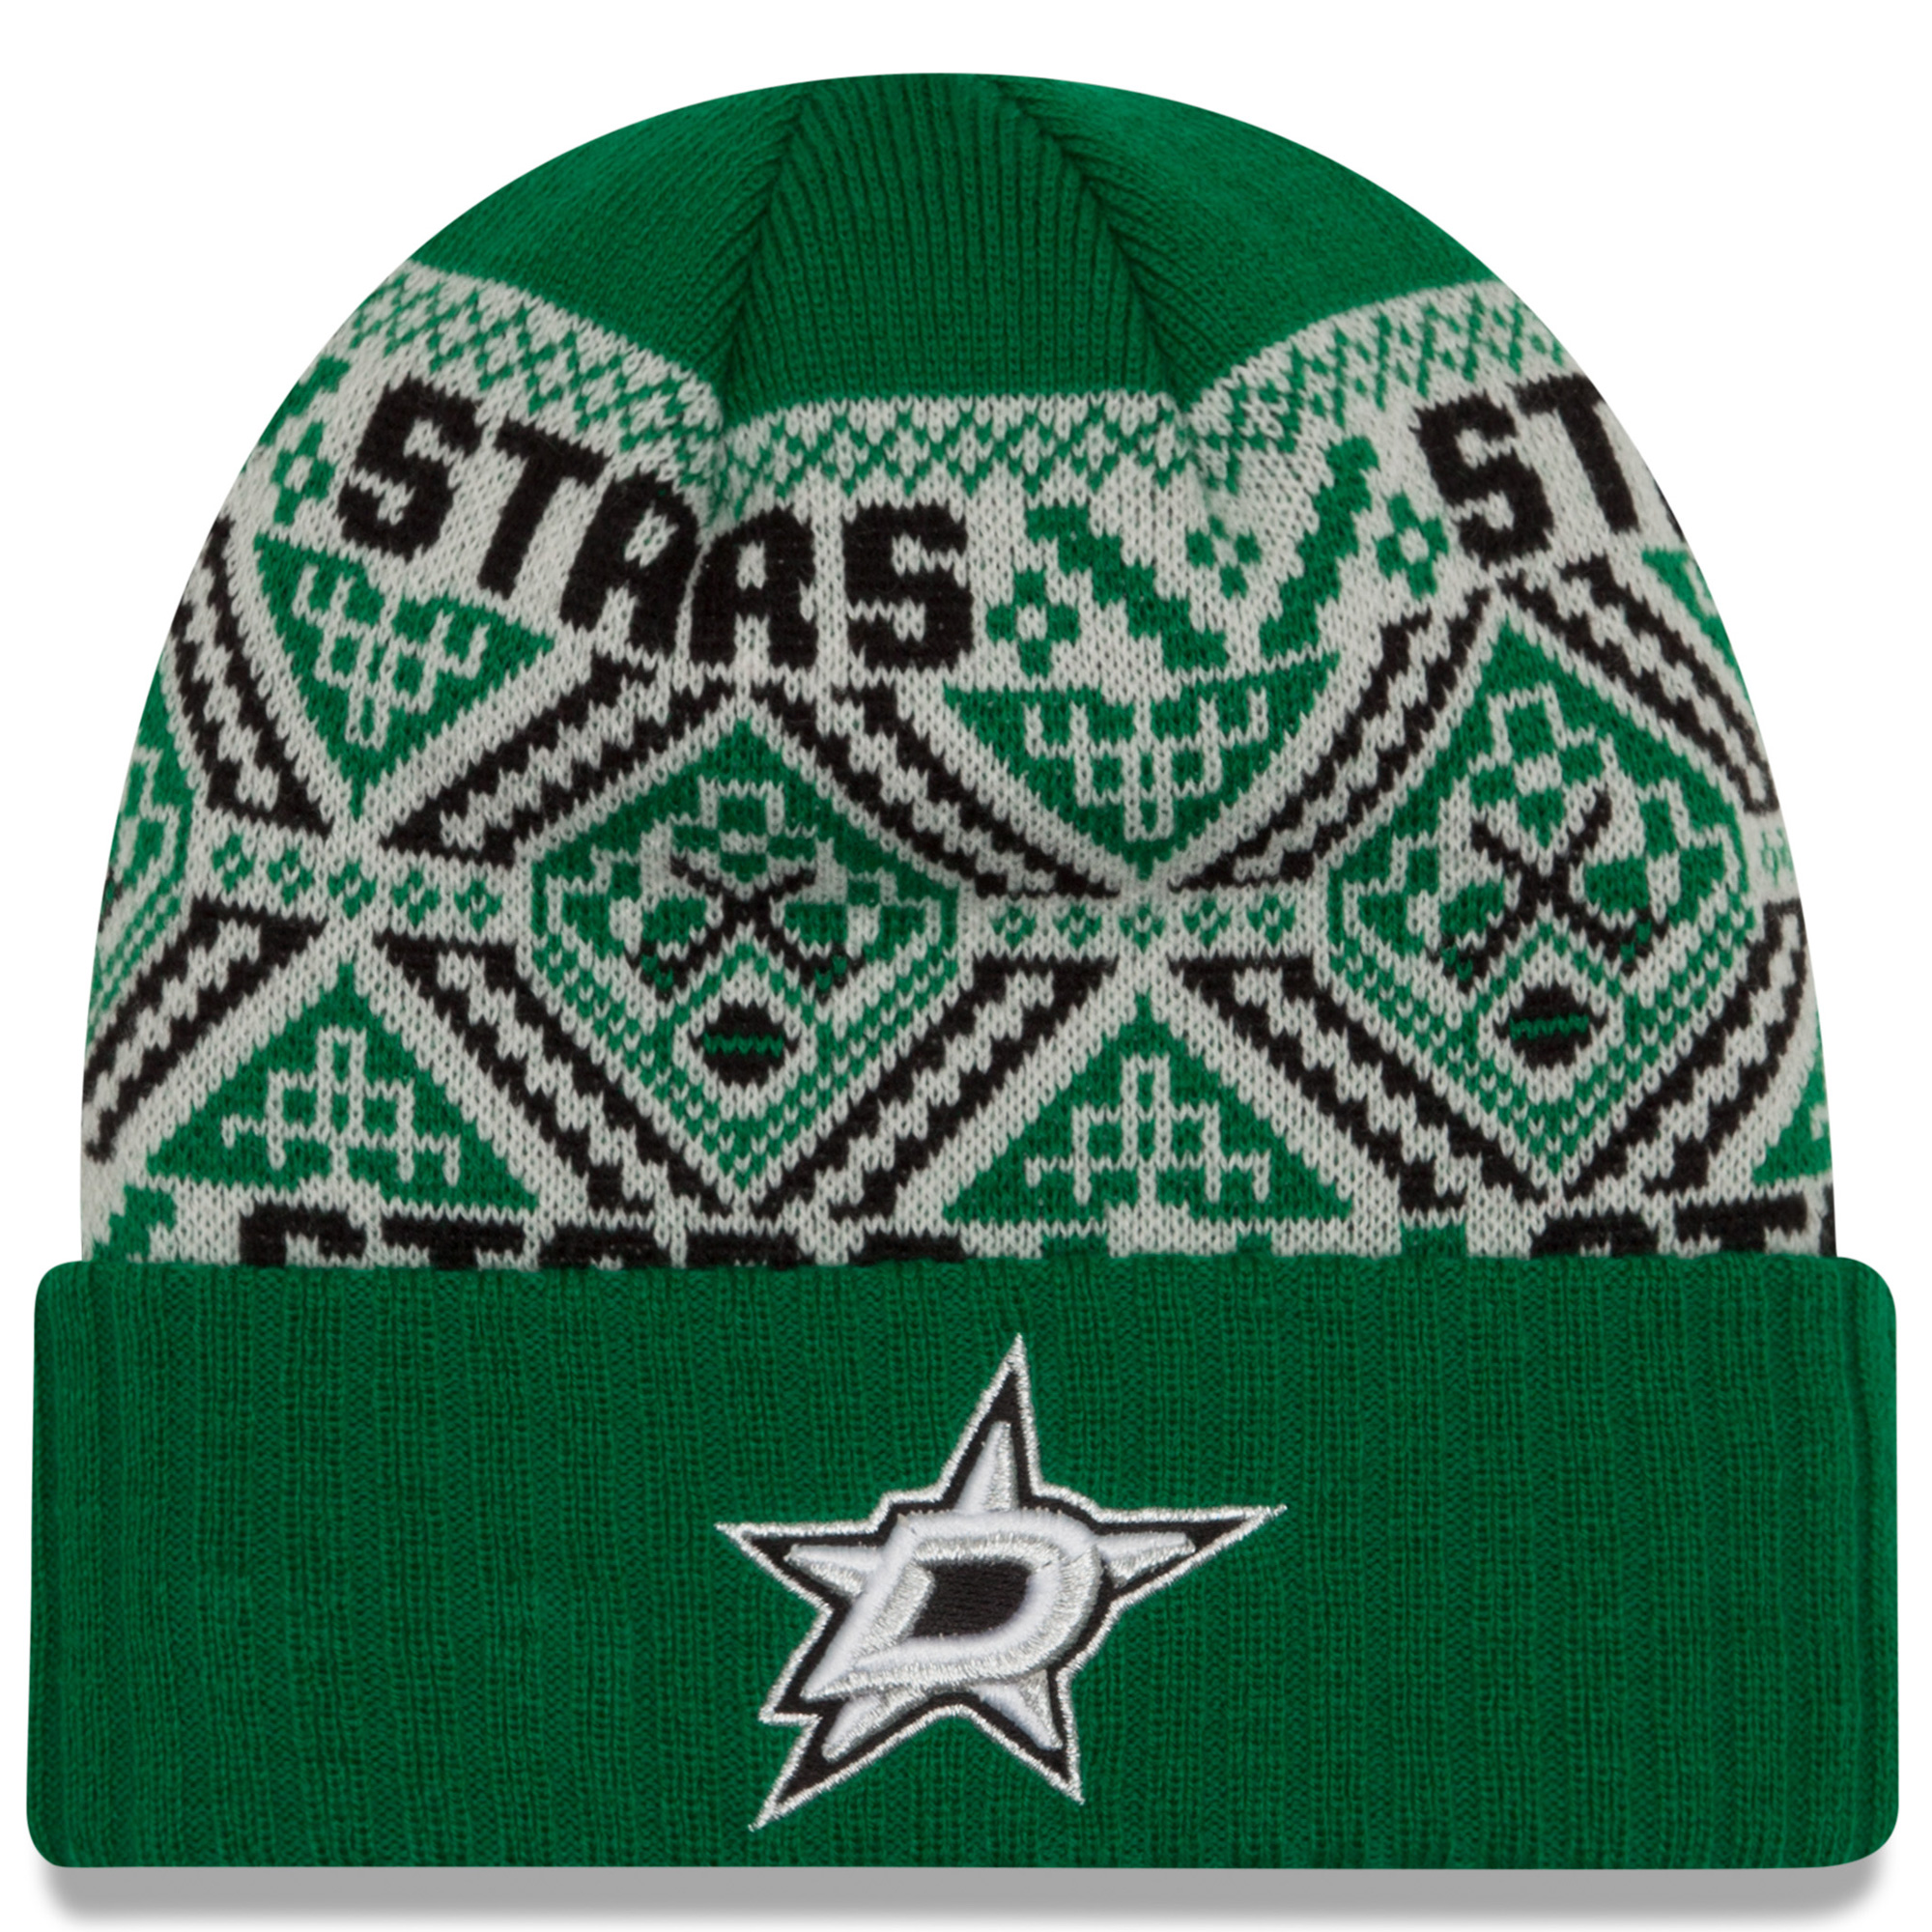 Dallas Stars New Era Cozy Cuffed Knit Hat - Kelly Green - OSFA